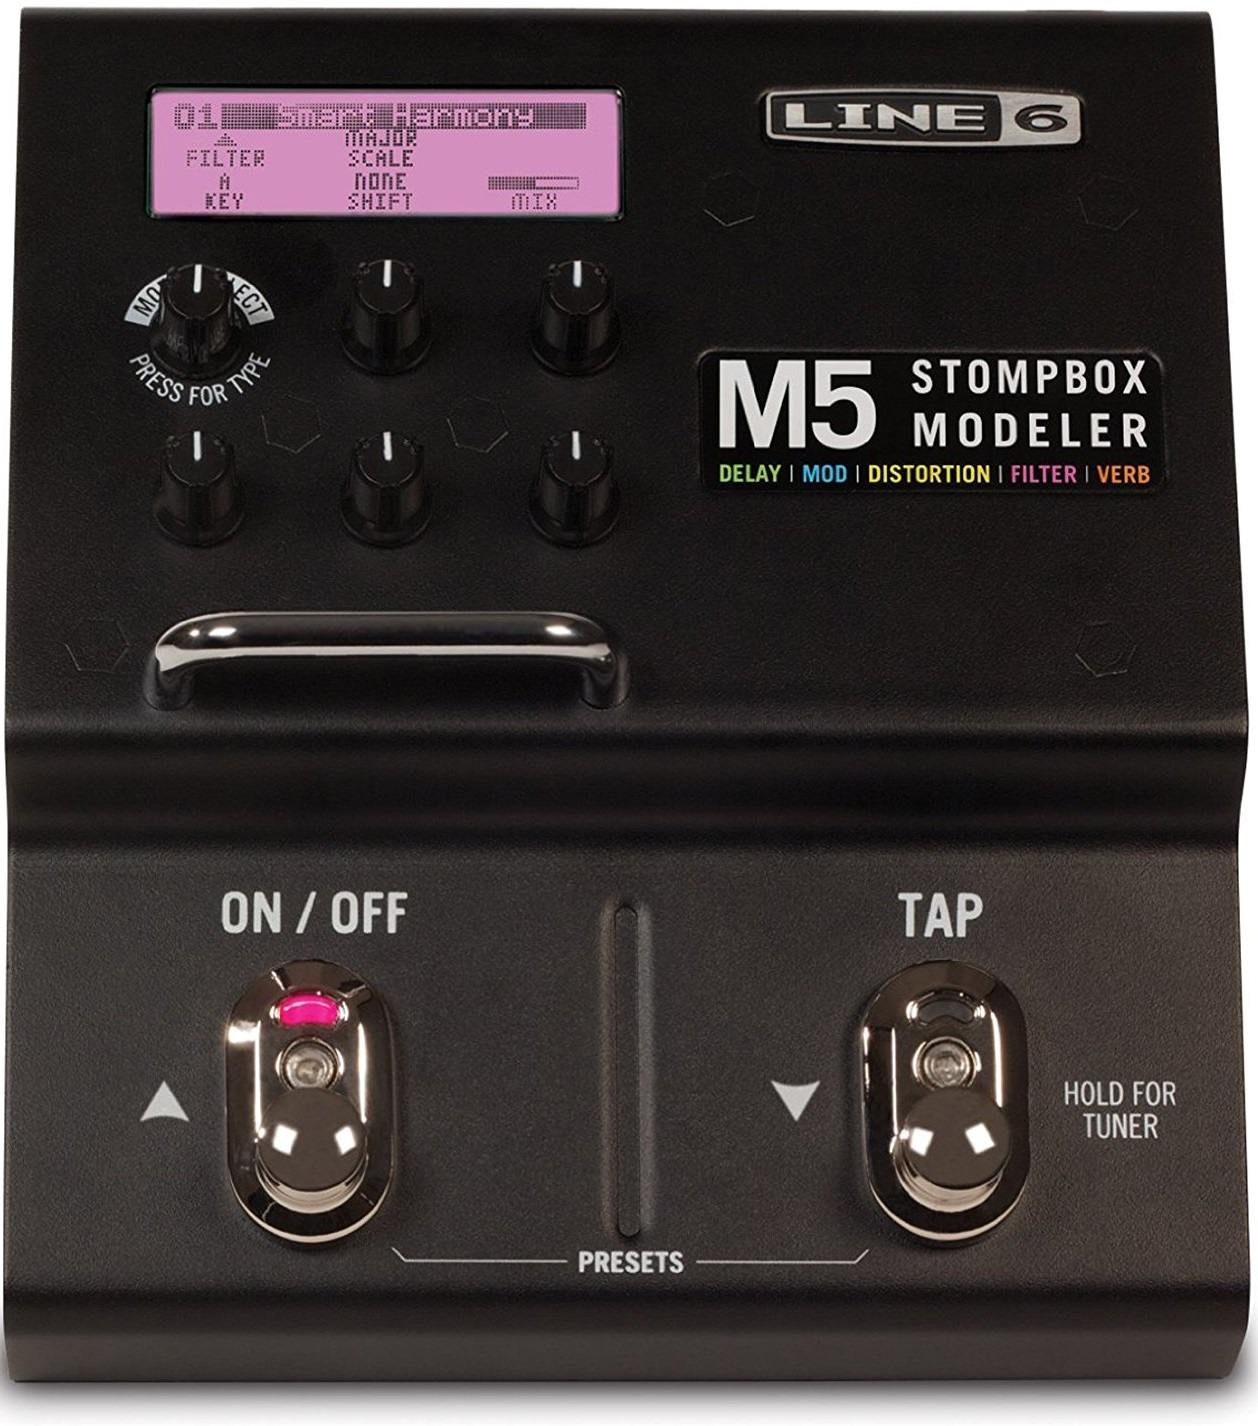 Line 6 M5 Stompbox Modeler with Reverb and MIDI i/o